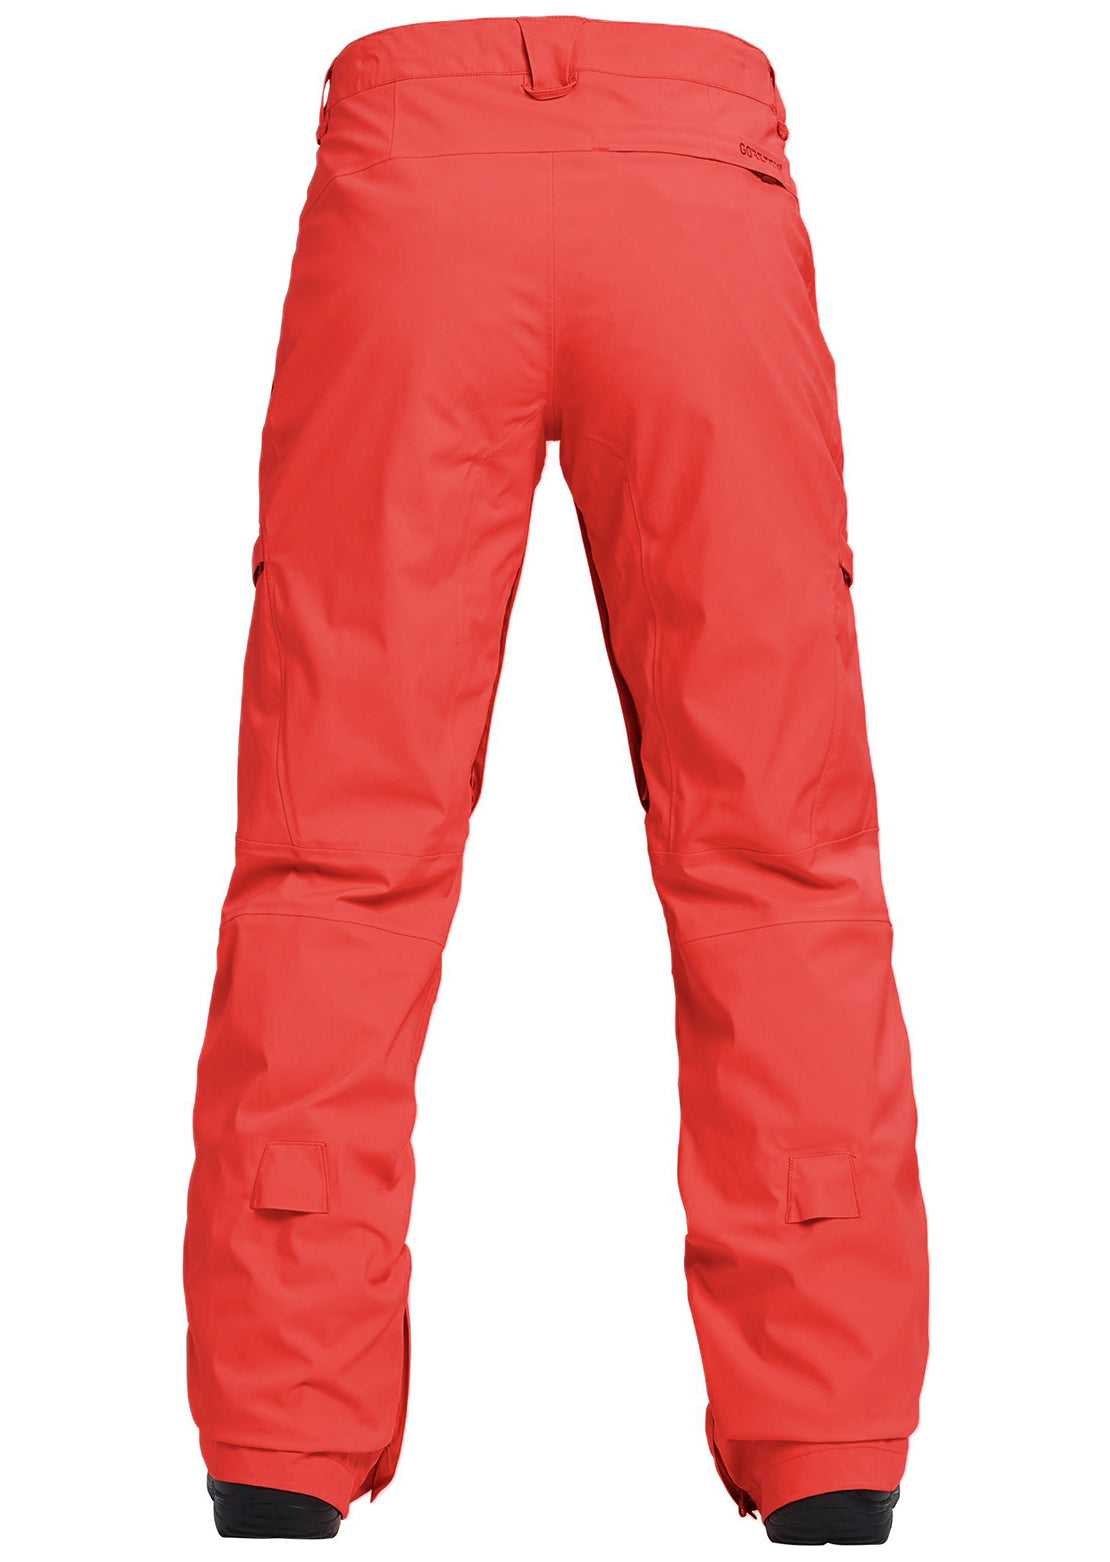 Burton AK Women's GORE-TEX Insulated Summit Pants Hibiscus Pink